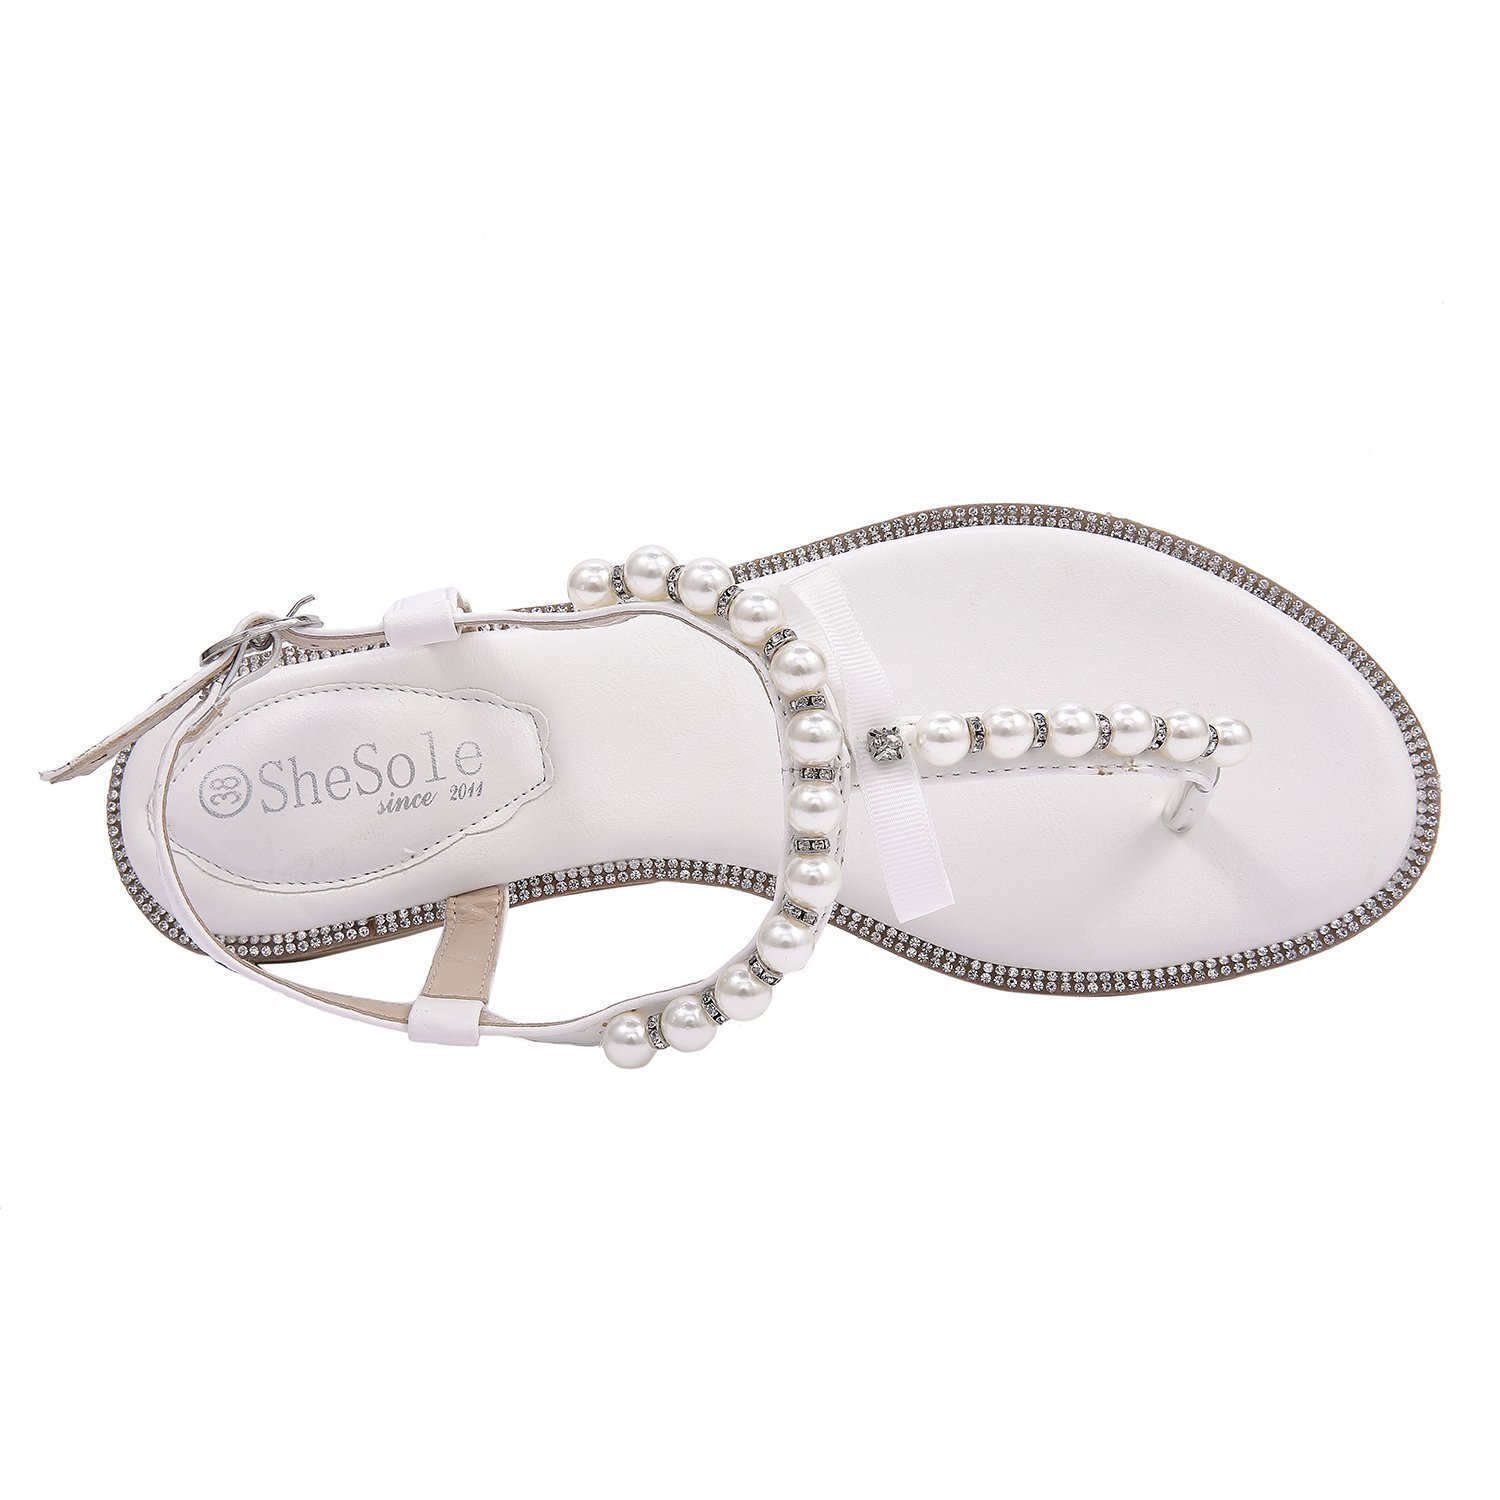 b2fdb1752 SheSole Ladies Toe Post Party Flat White Sandals Flip Flops Pearl Wedding  Shoes  Amazon.co.uk  Shoes   Bags